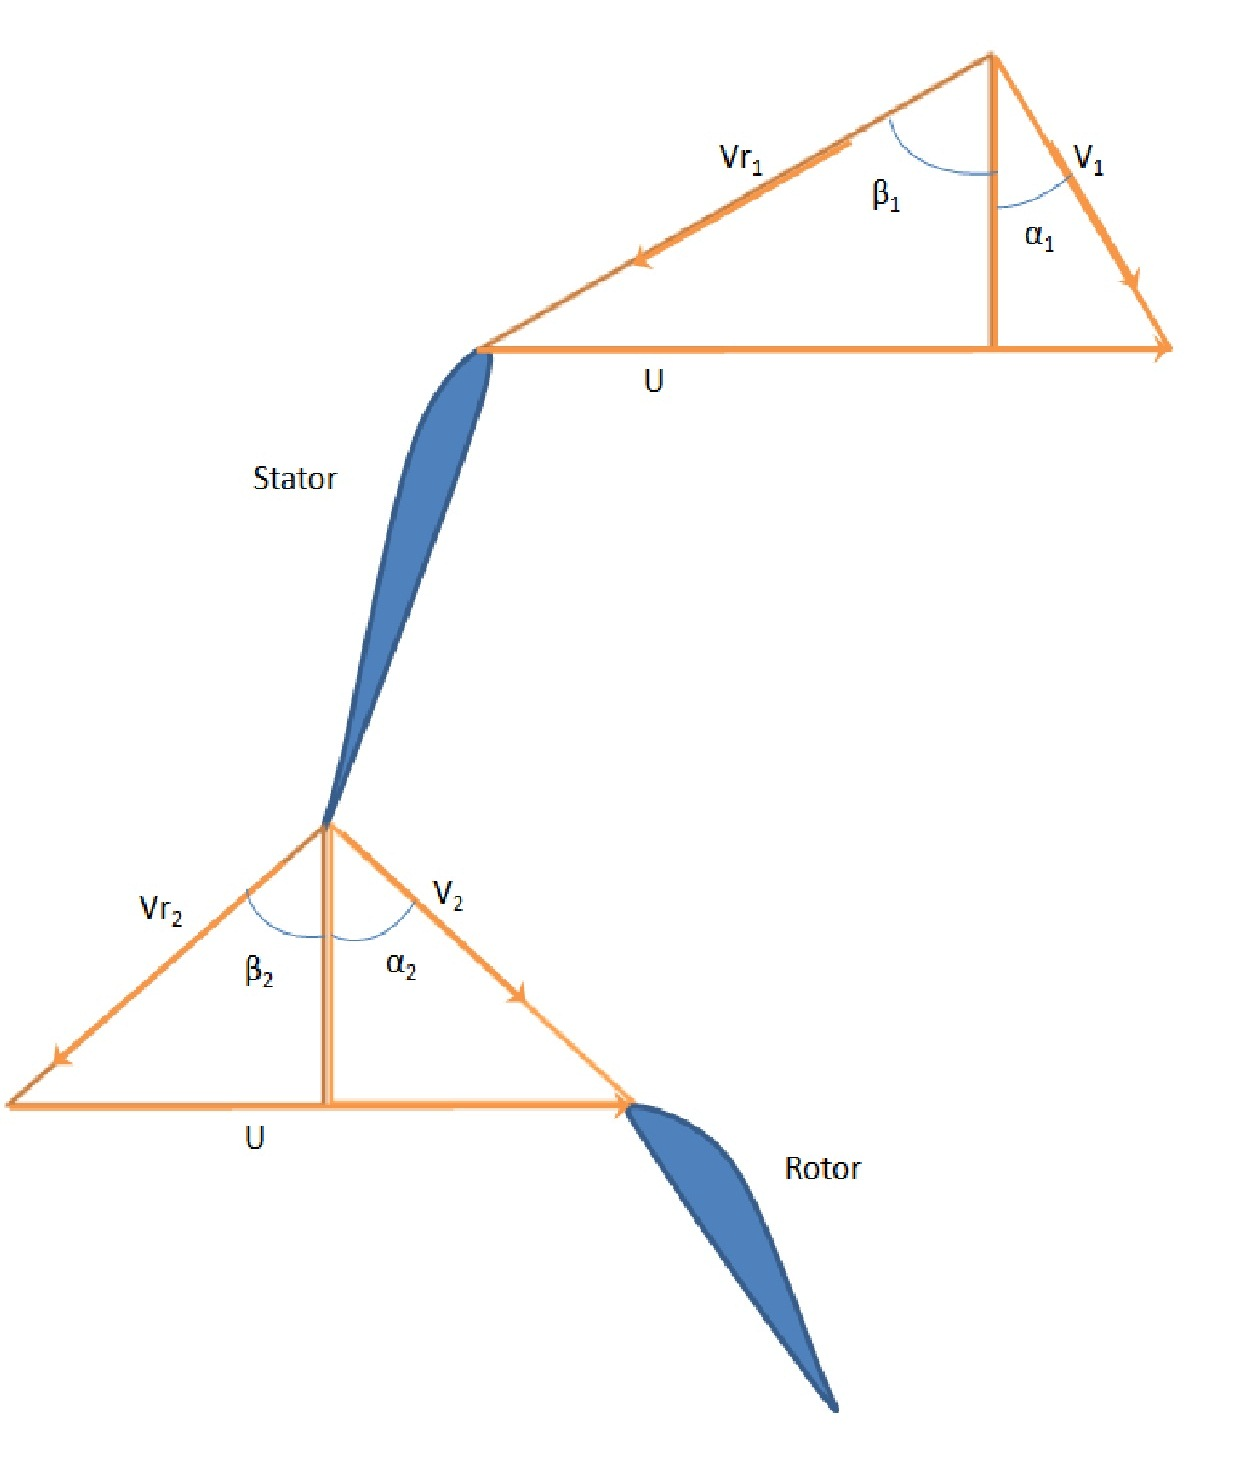 hight resolution of file velocity triangle for reaction more than 50 jpg